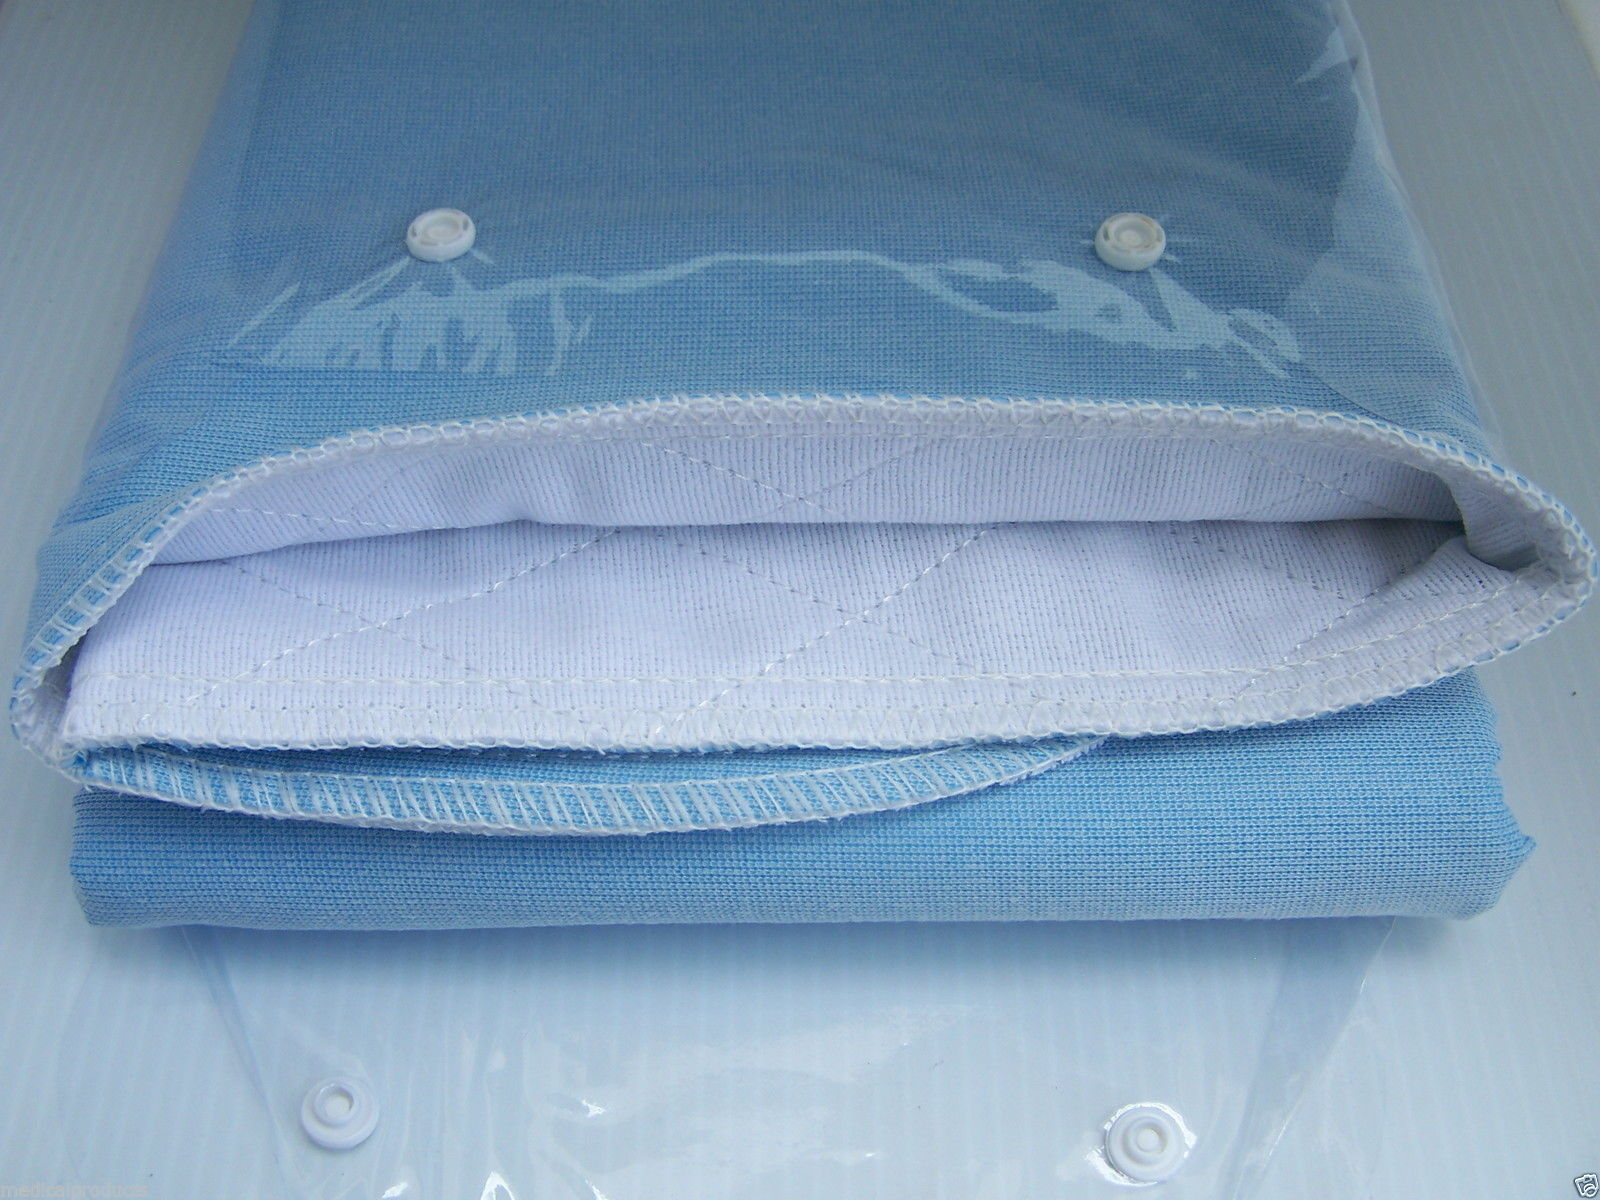 6 Reusable Washable Underpads Bed Pads 36x54 Hospital